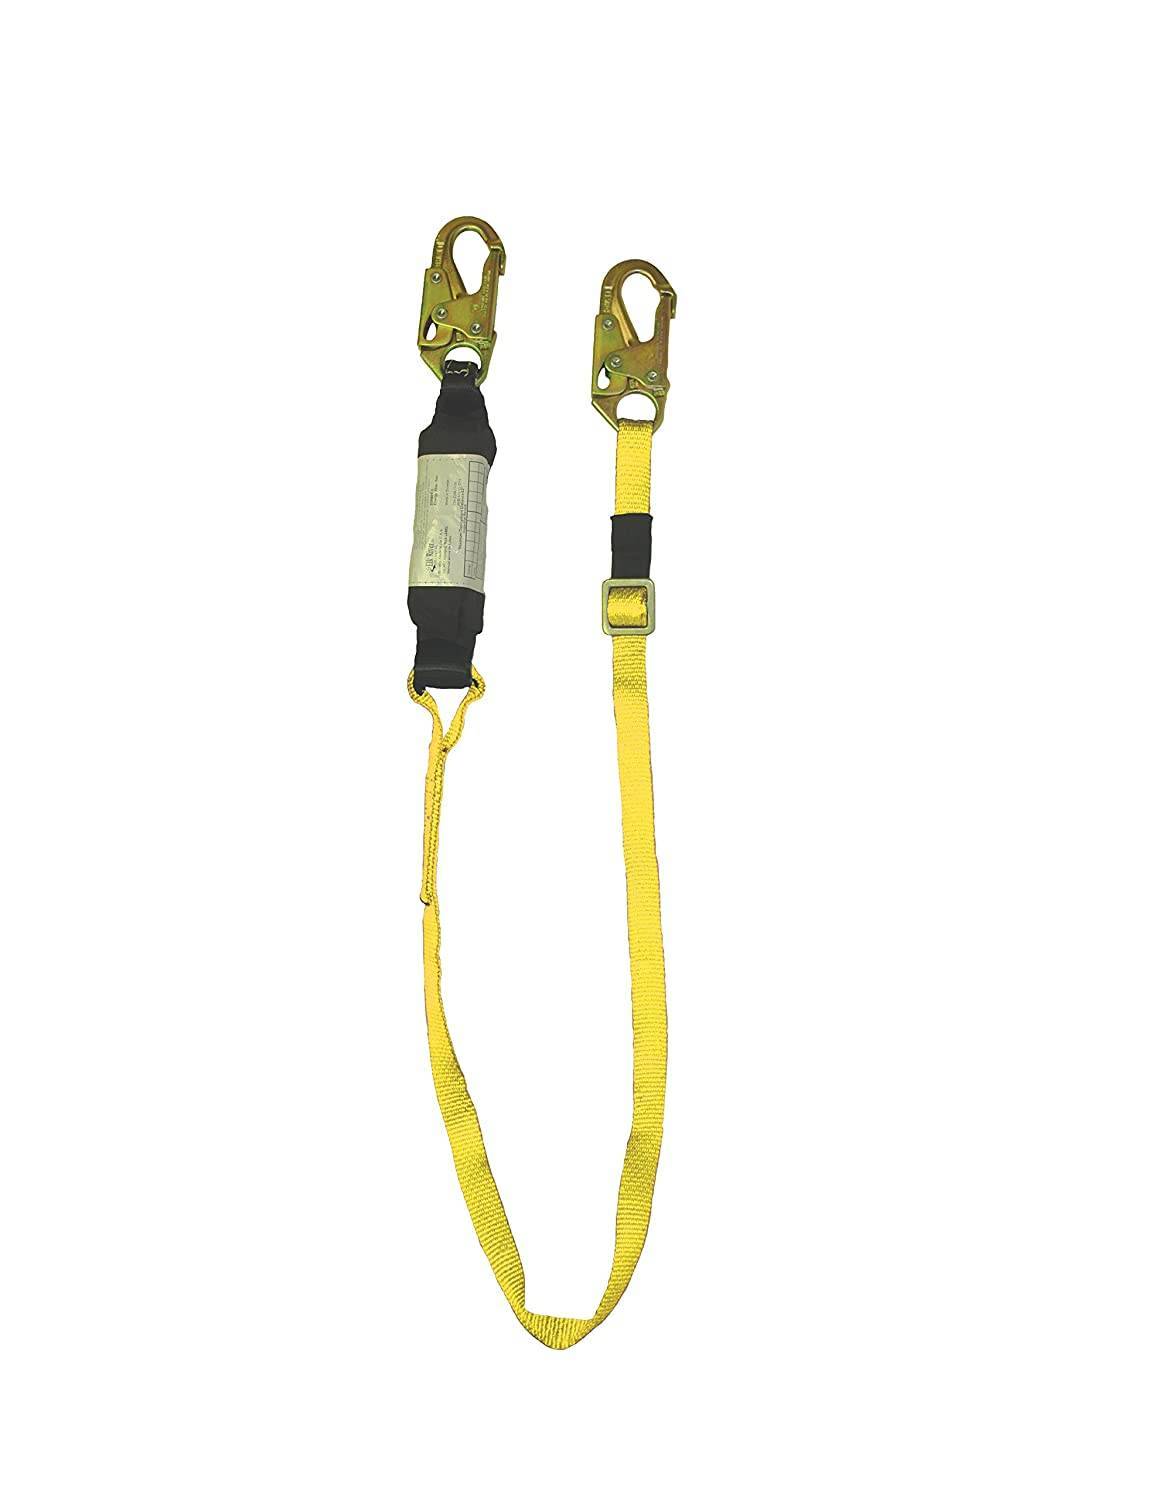 Elk River 63117 Eagle Twin Leg Nylon Positioning Web Lanyard with Zsnaphook and Zrebar Hook, 3600 lbs Gate, 6' Length x 1 Width by Elk River B005FMPPQ2